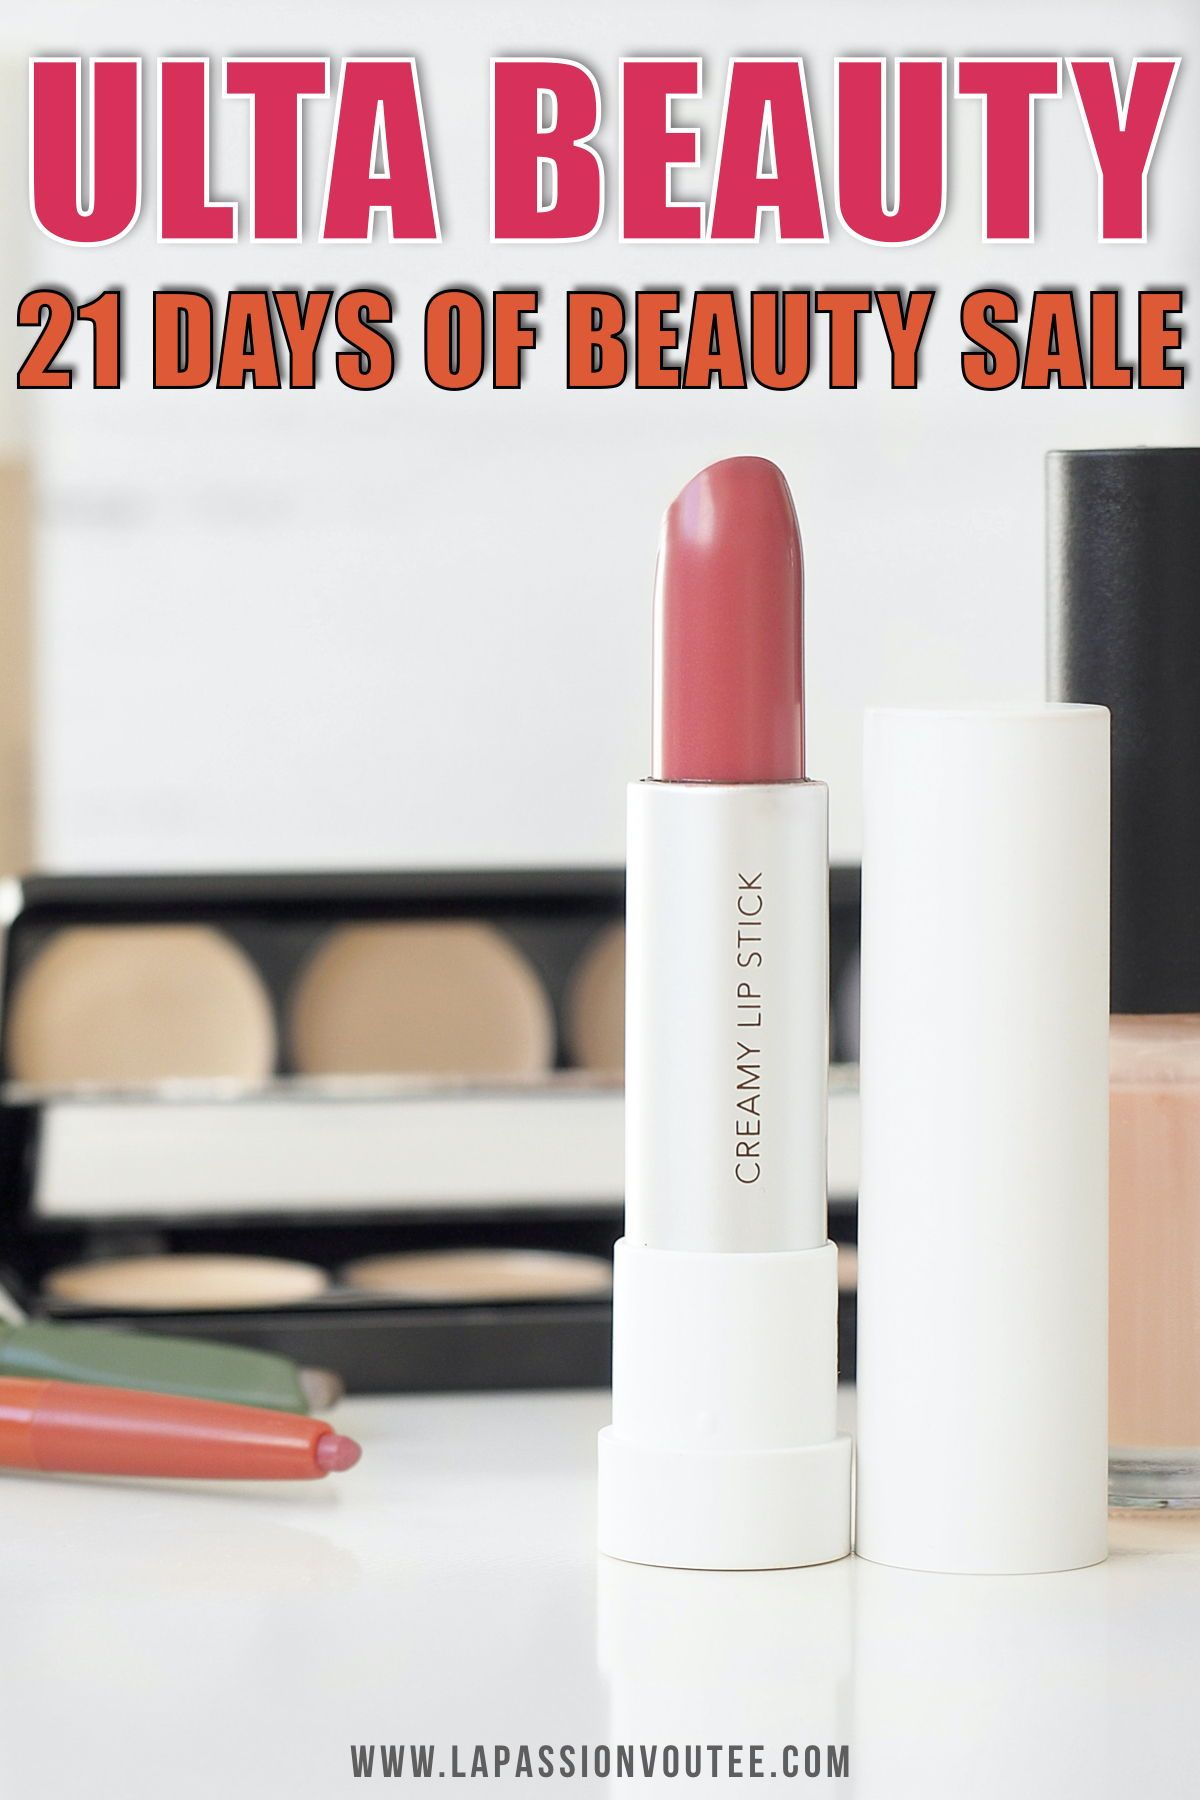 Ulta 21 Days of Beauty Spring 2020 Sale These are the